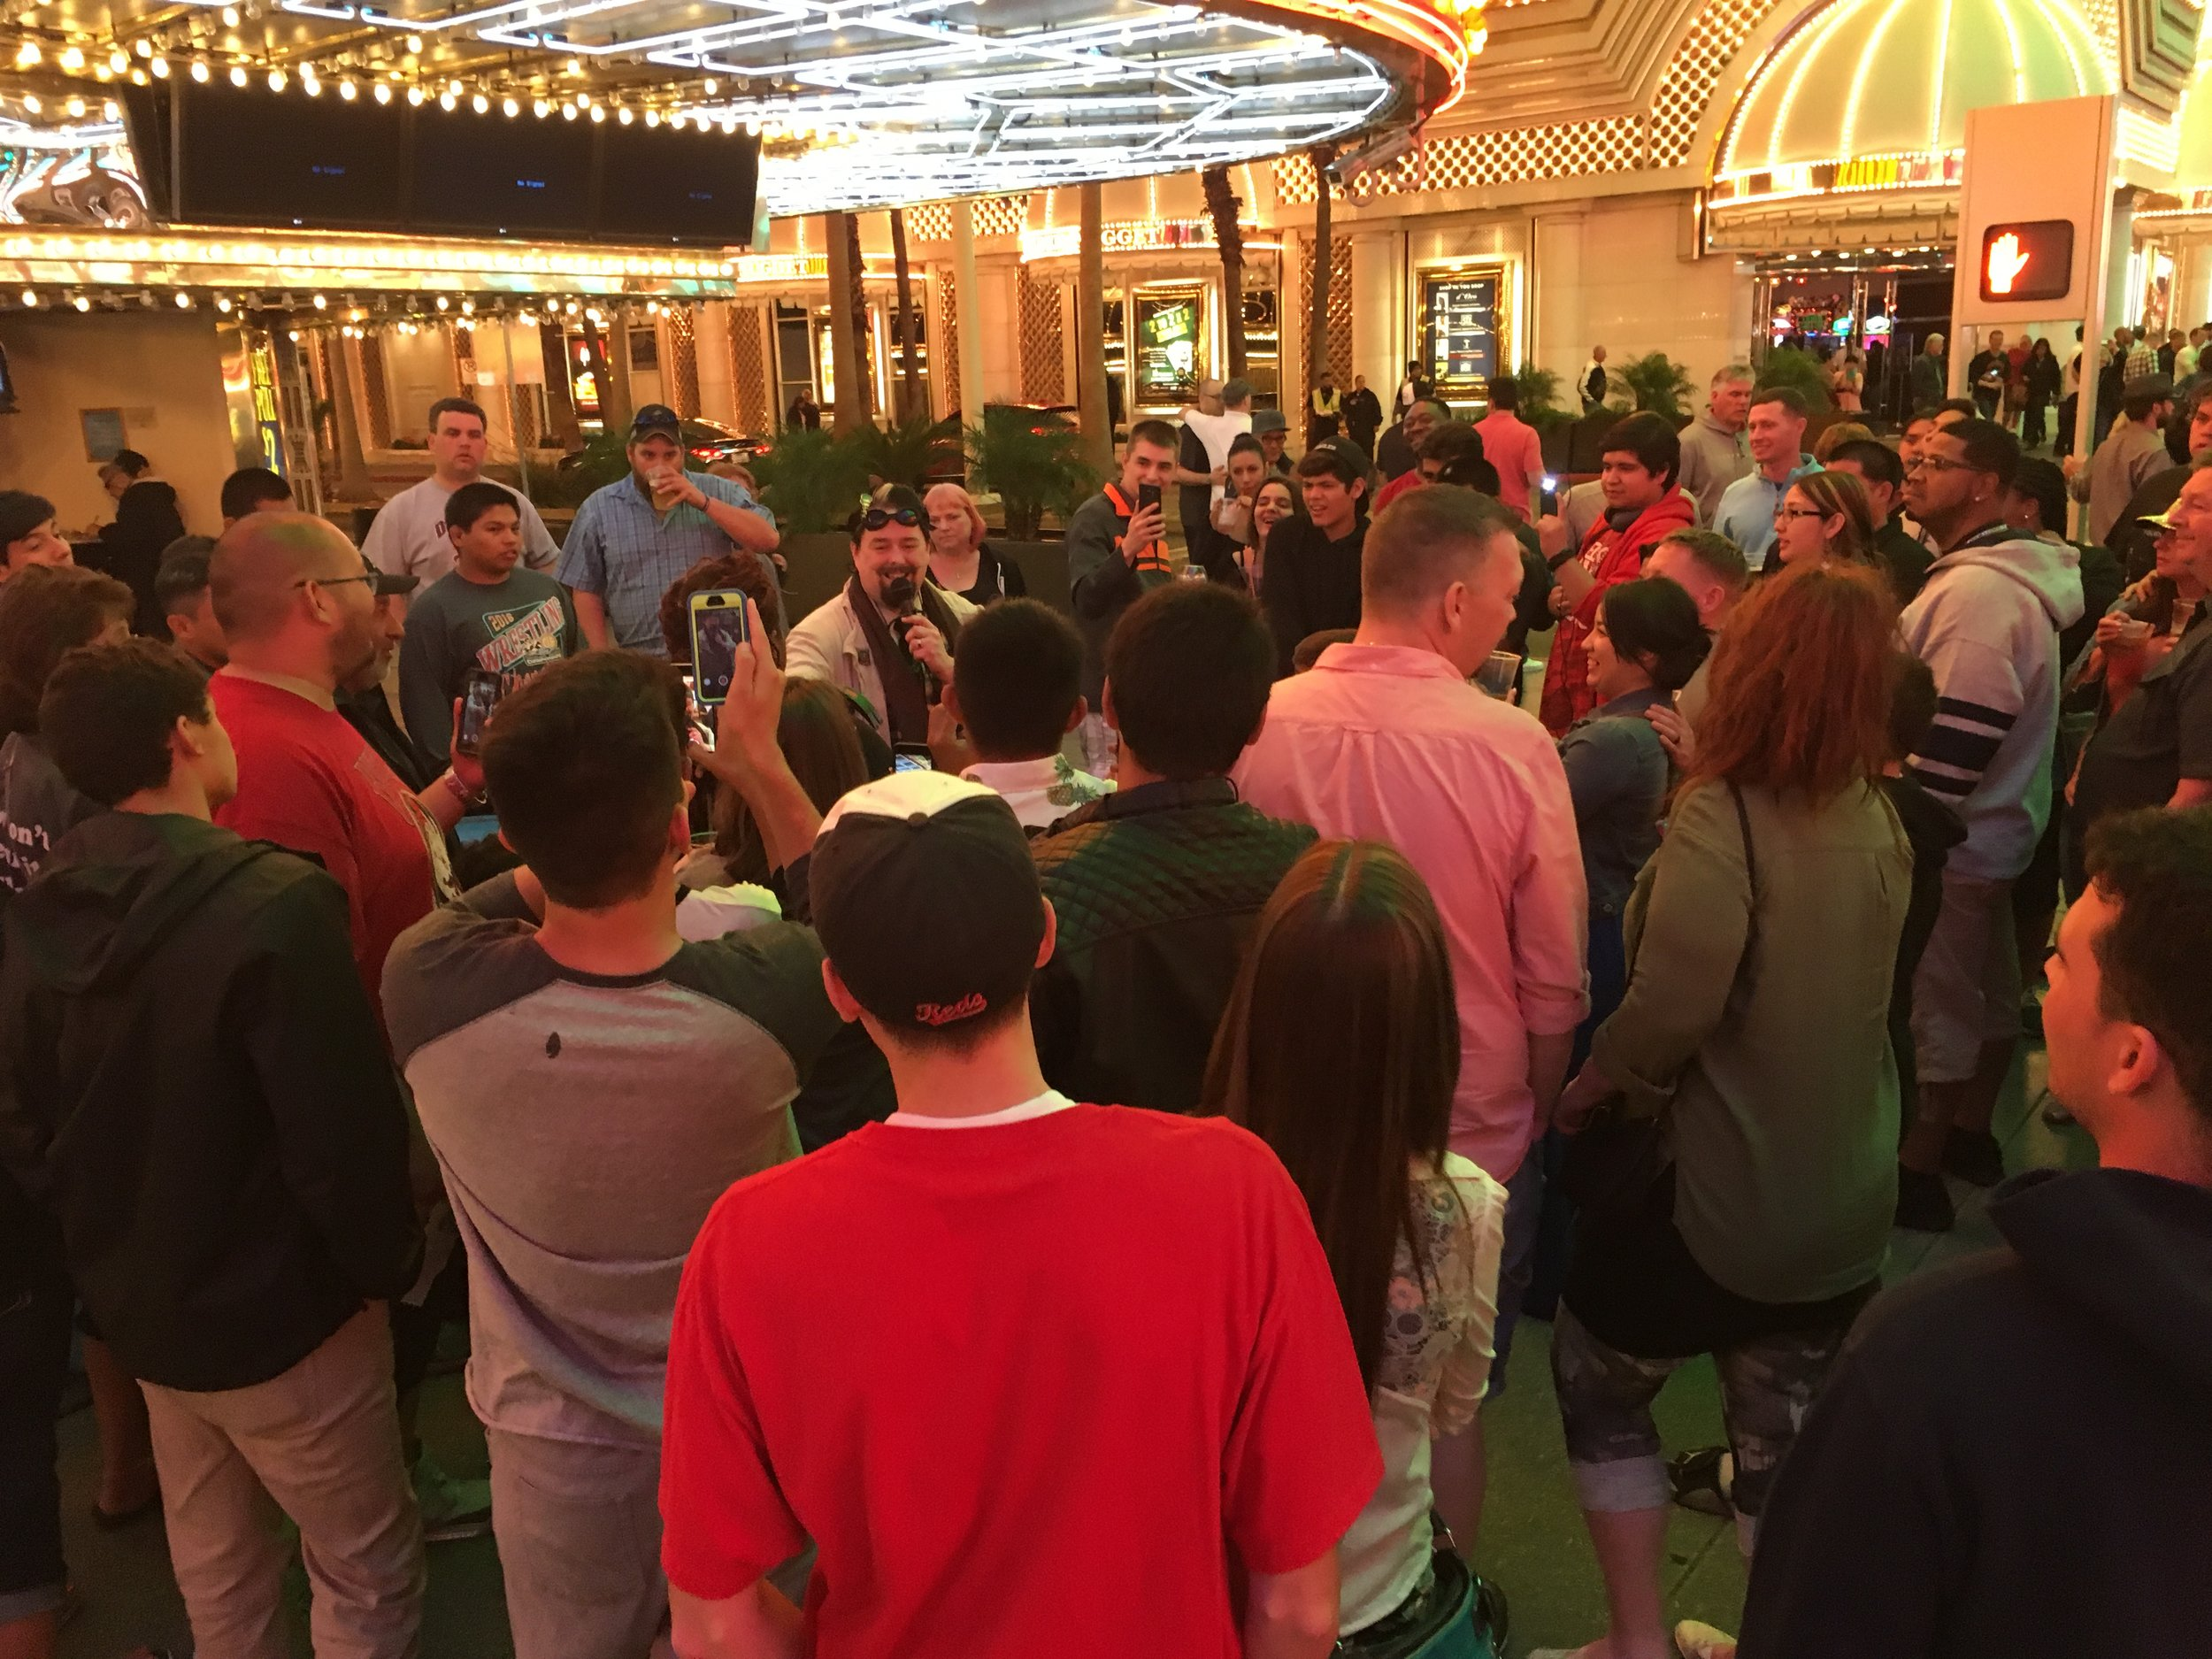 I've gathered quite a crowd of people here in front of the 4 Queens Hotel and Casino on Fremont Street.